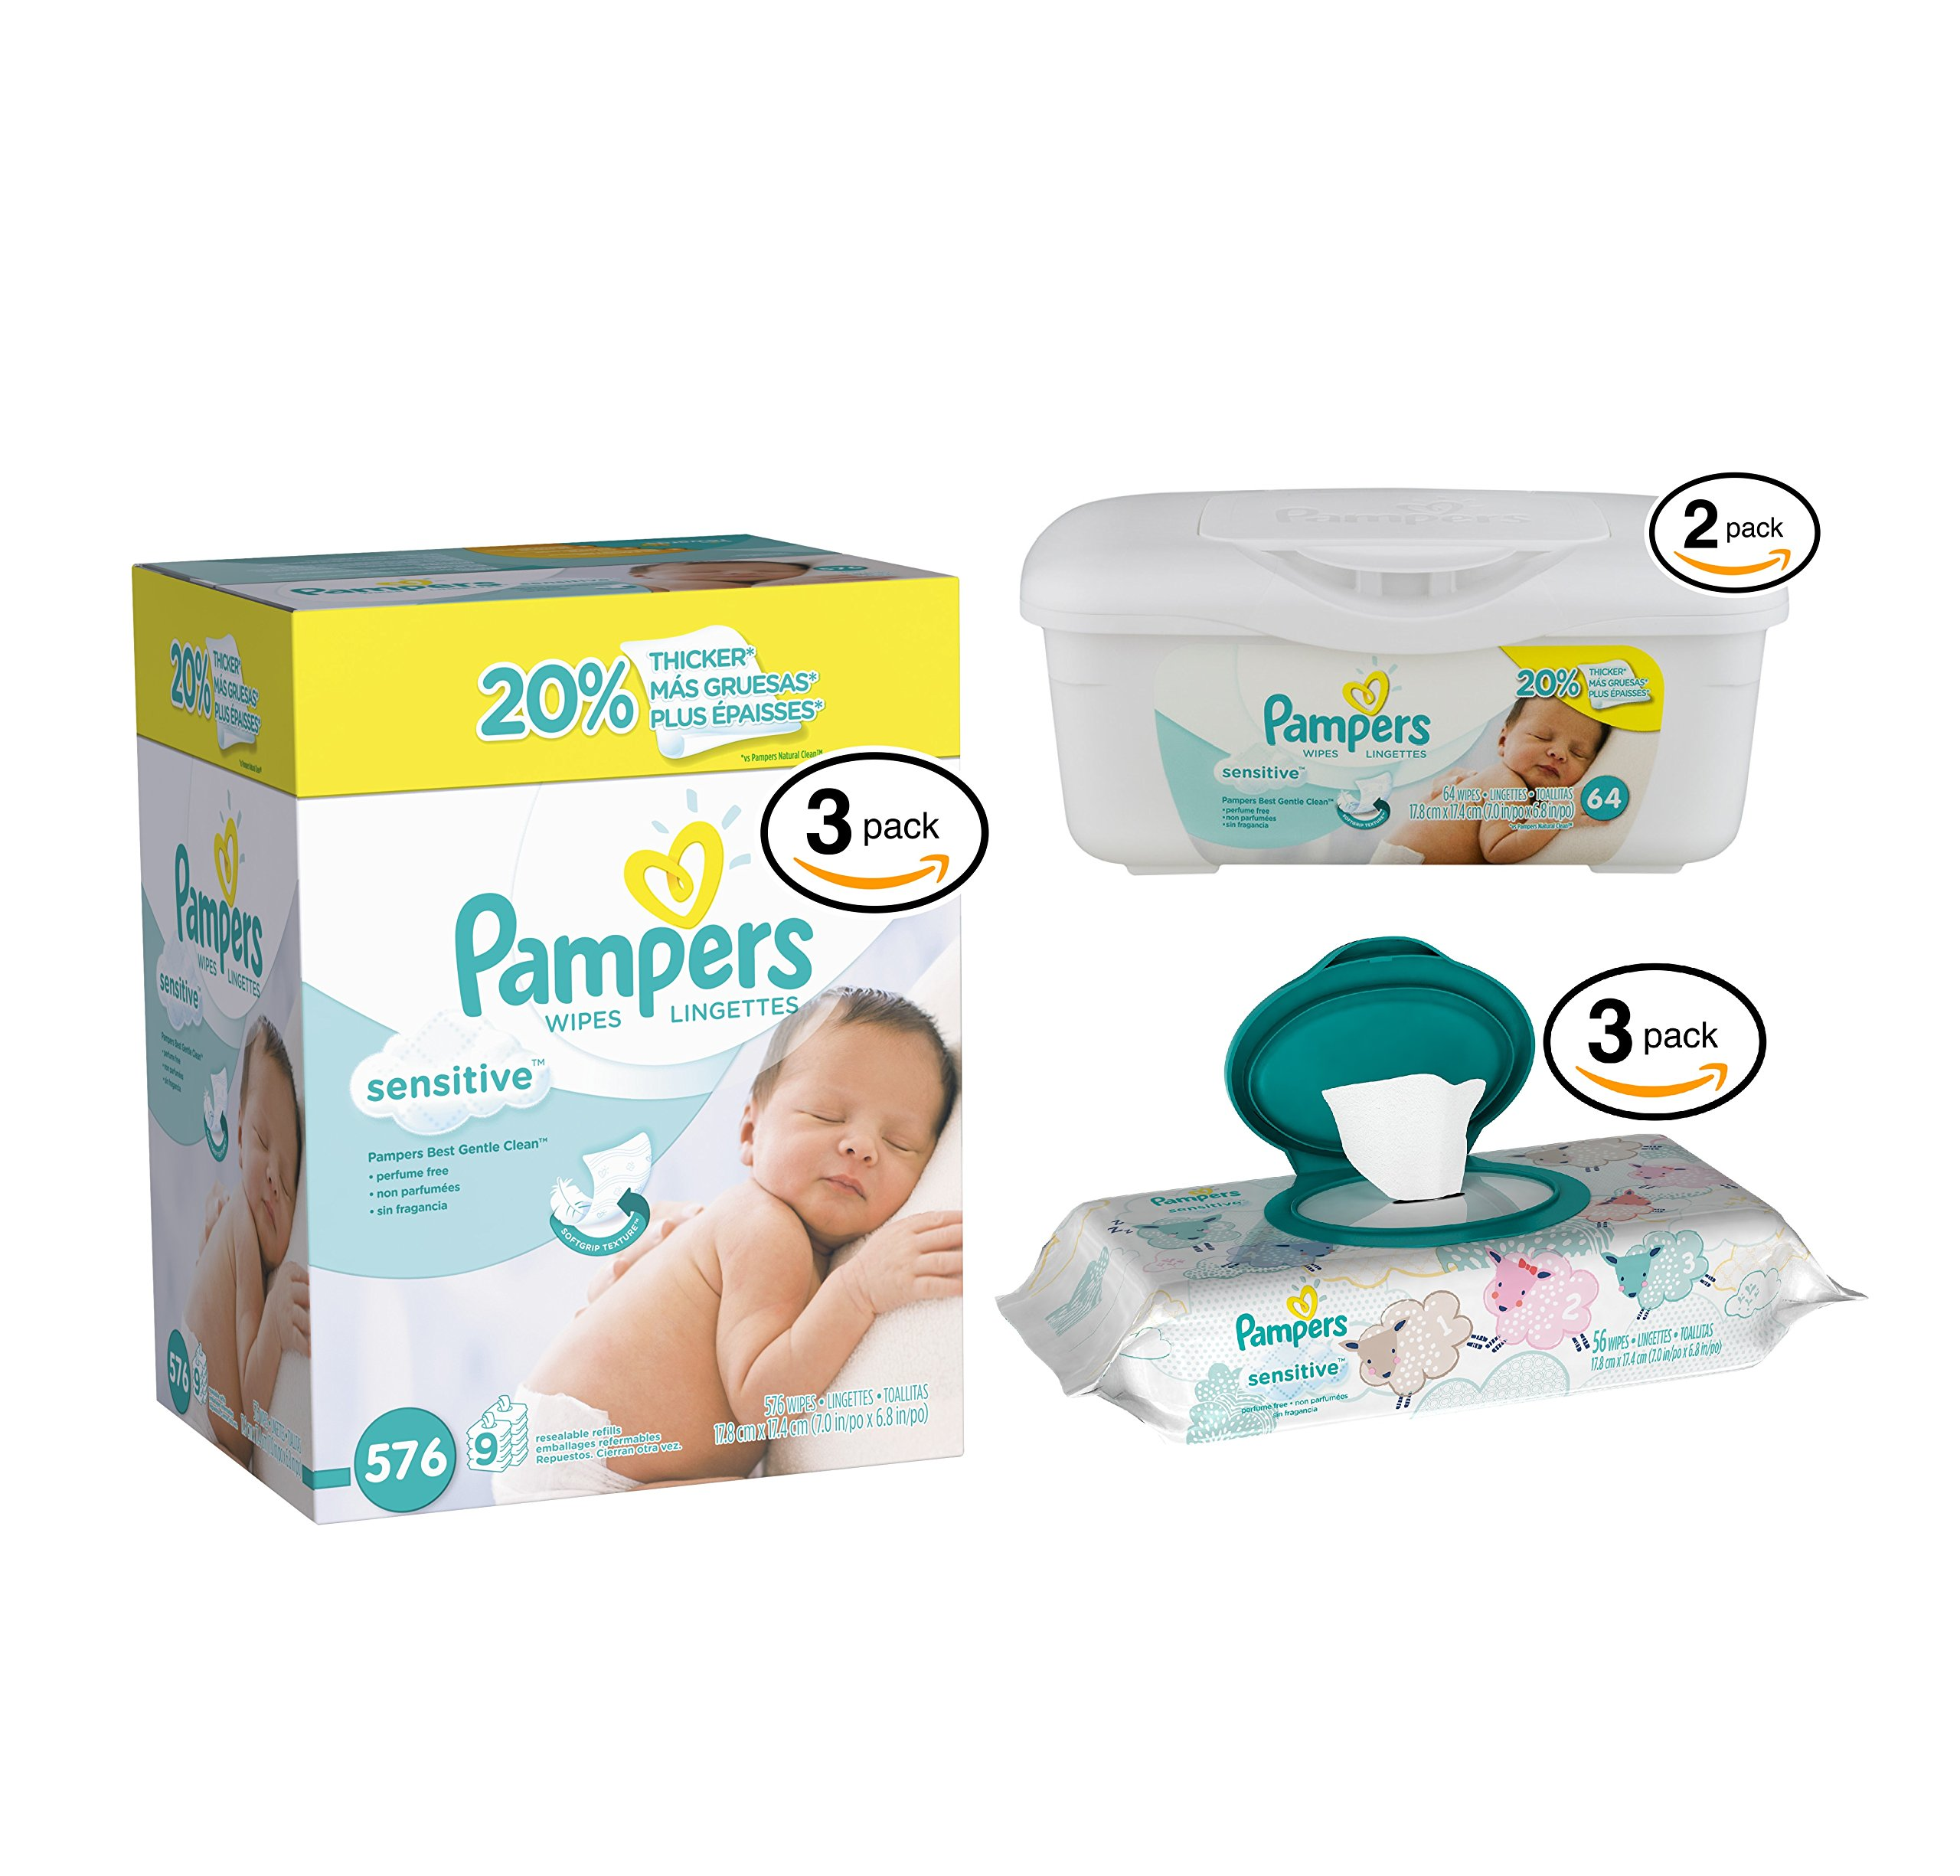 Pampers Sensitive Wipes (27 Refill-64ct / 2 Tub-64ct / 3 Travel Pack-56ct, Sensitive Wipes)